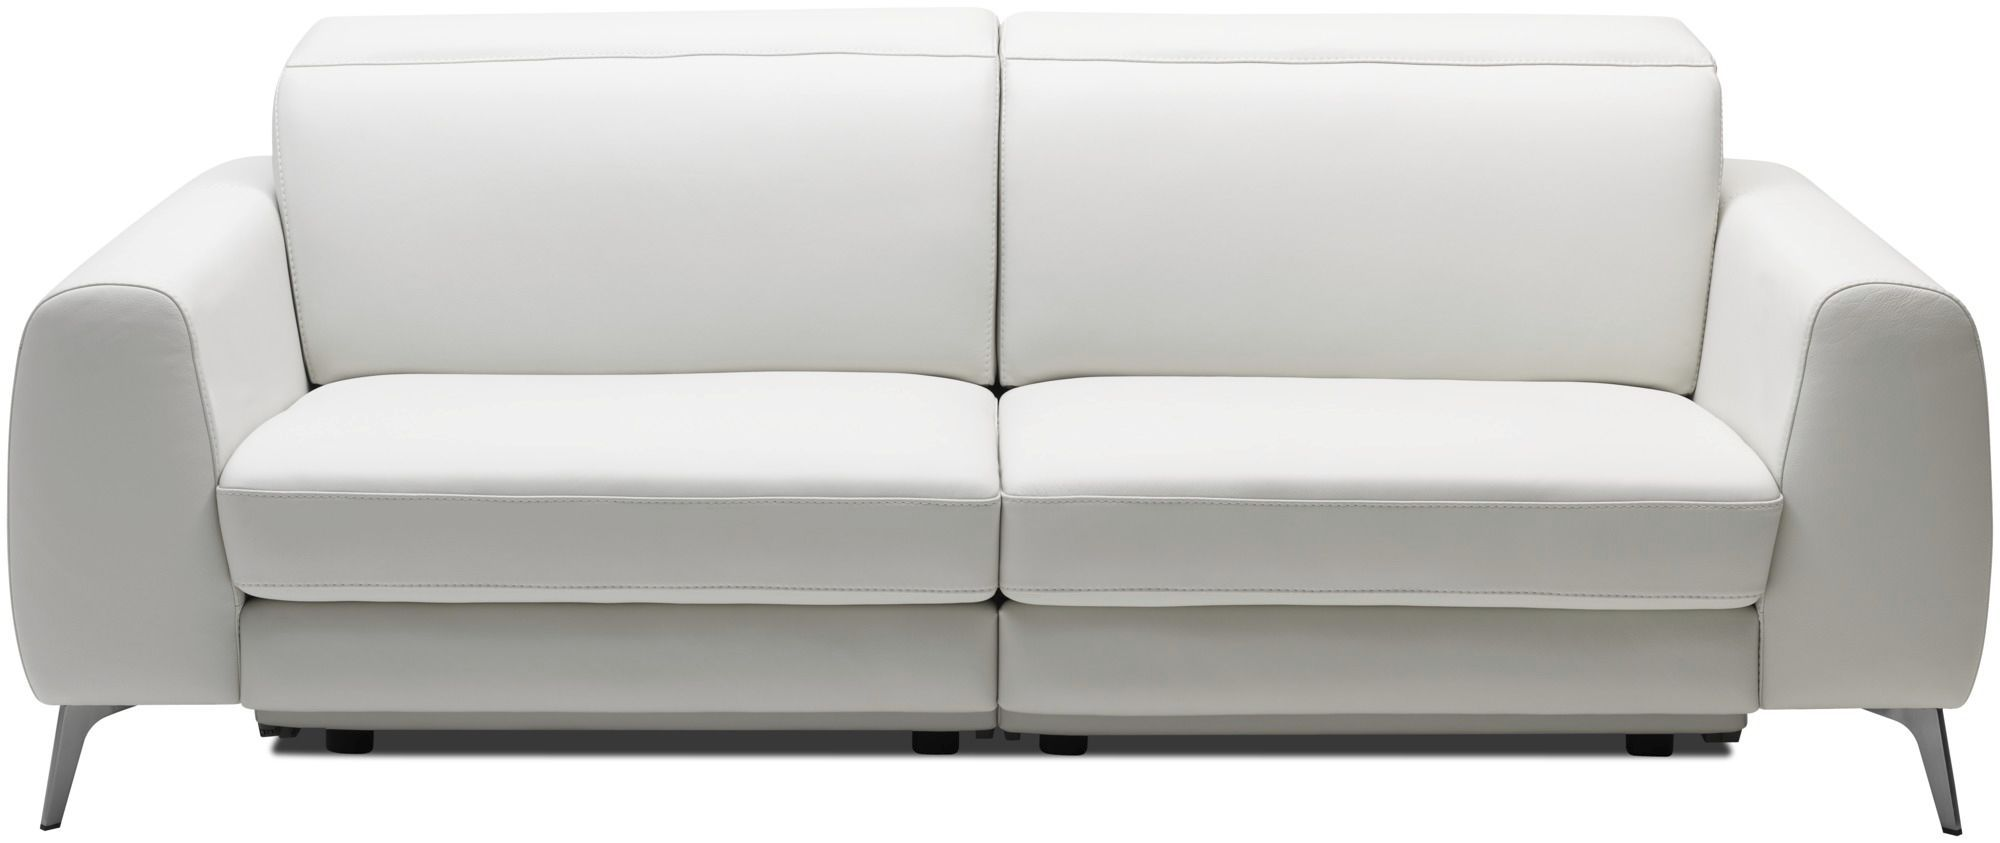 Peachy Modular Sofa Corner Contemporary Leather Madison By Dailytribune Chair Design For Home Dailytribuneorg